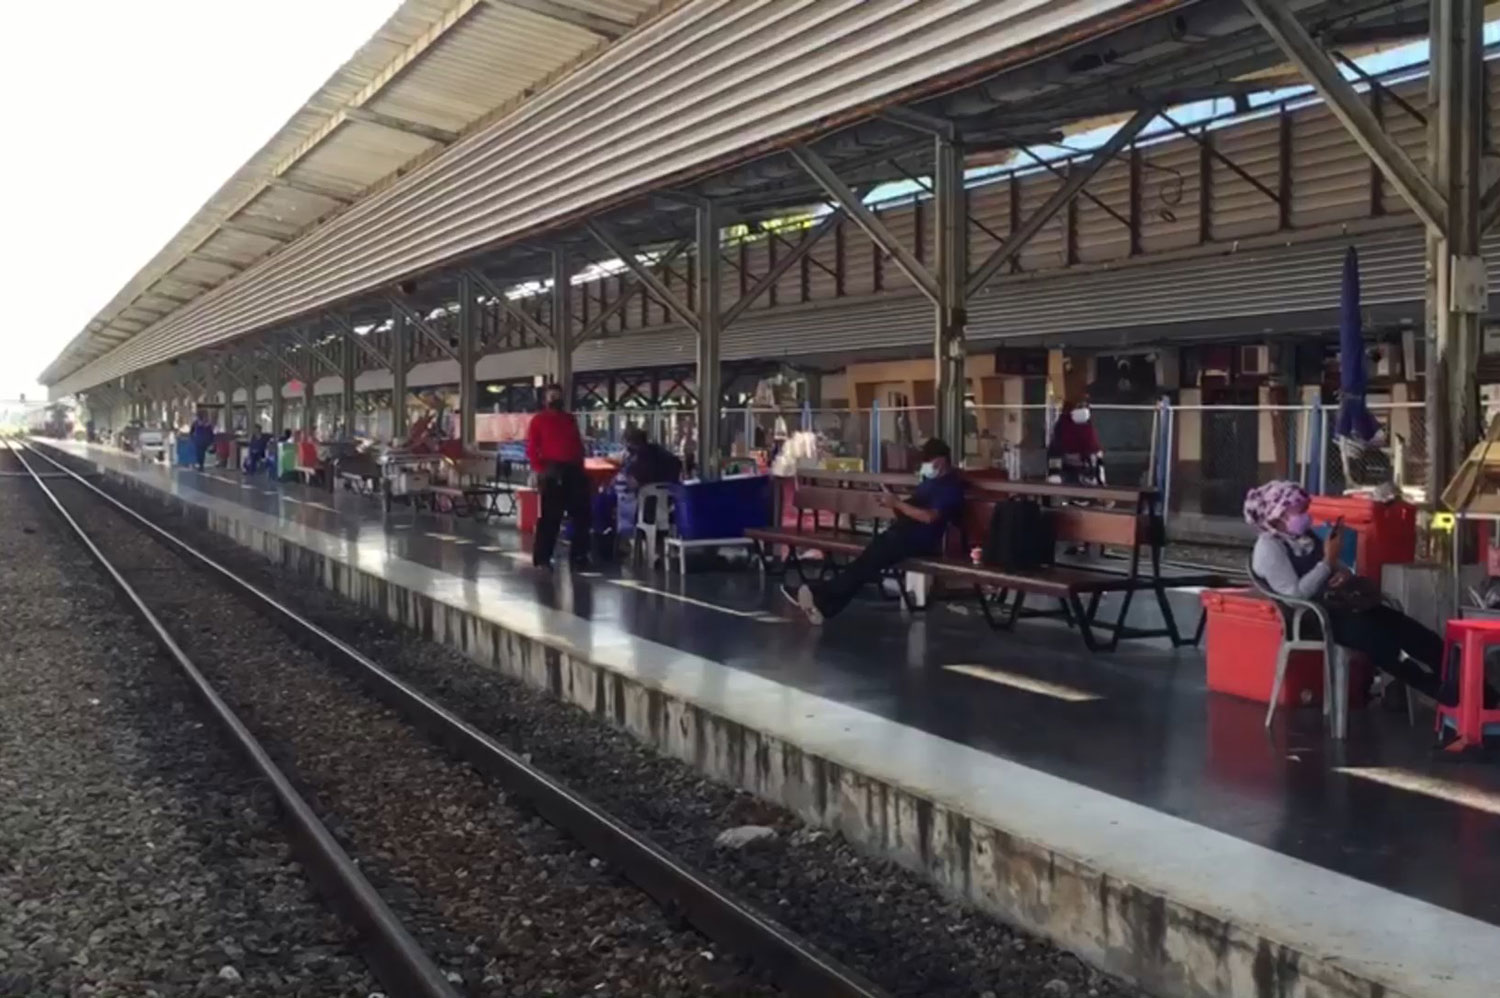 Fewer passengers than usual wait for a train at the Hat Yai railway junction in Songkhla on Sunday morning. (Photo: Assawin Pakkawan)